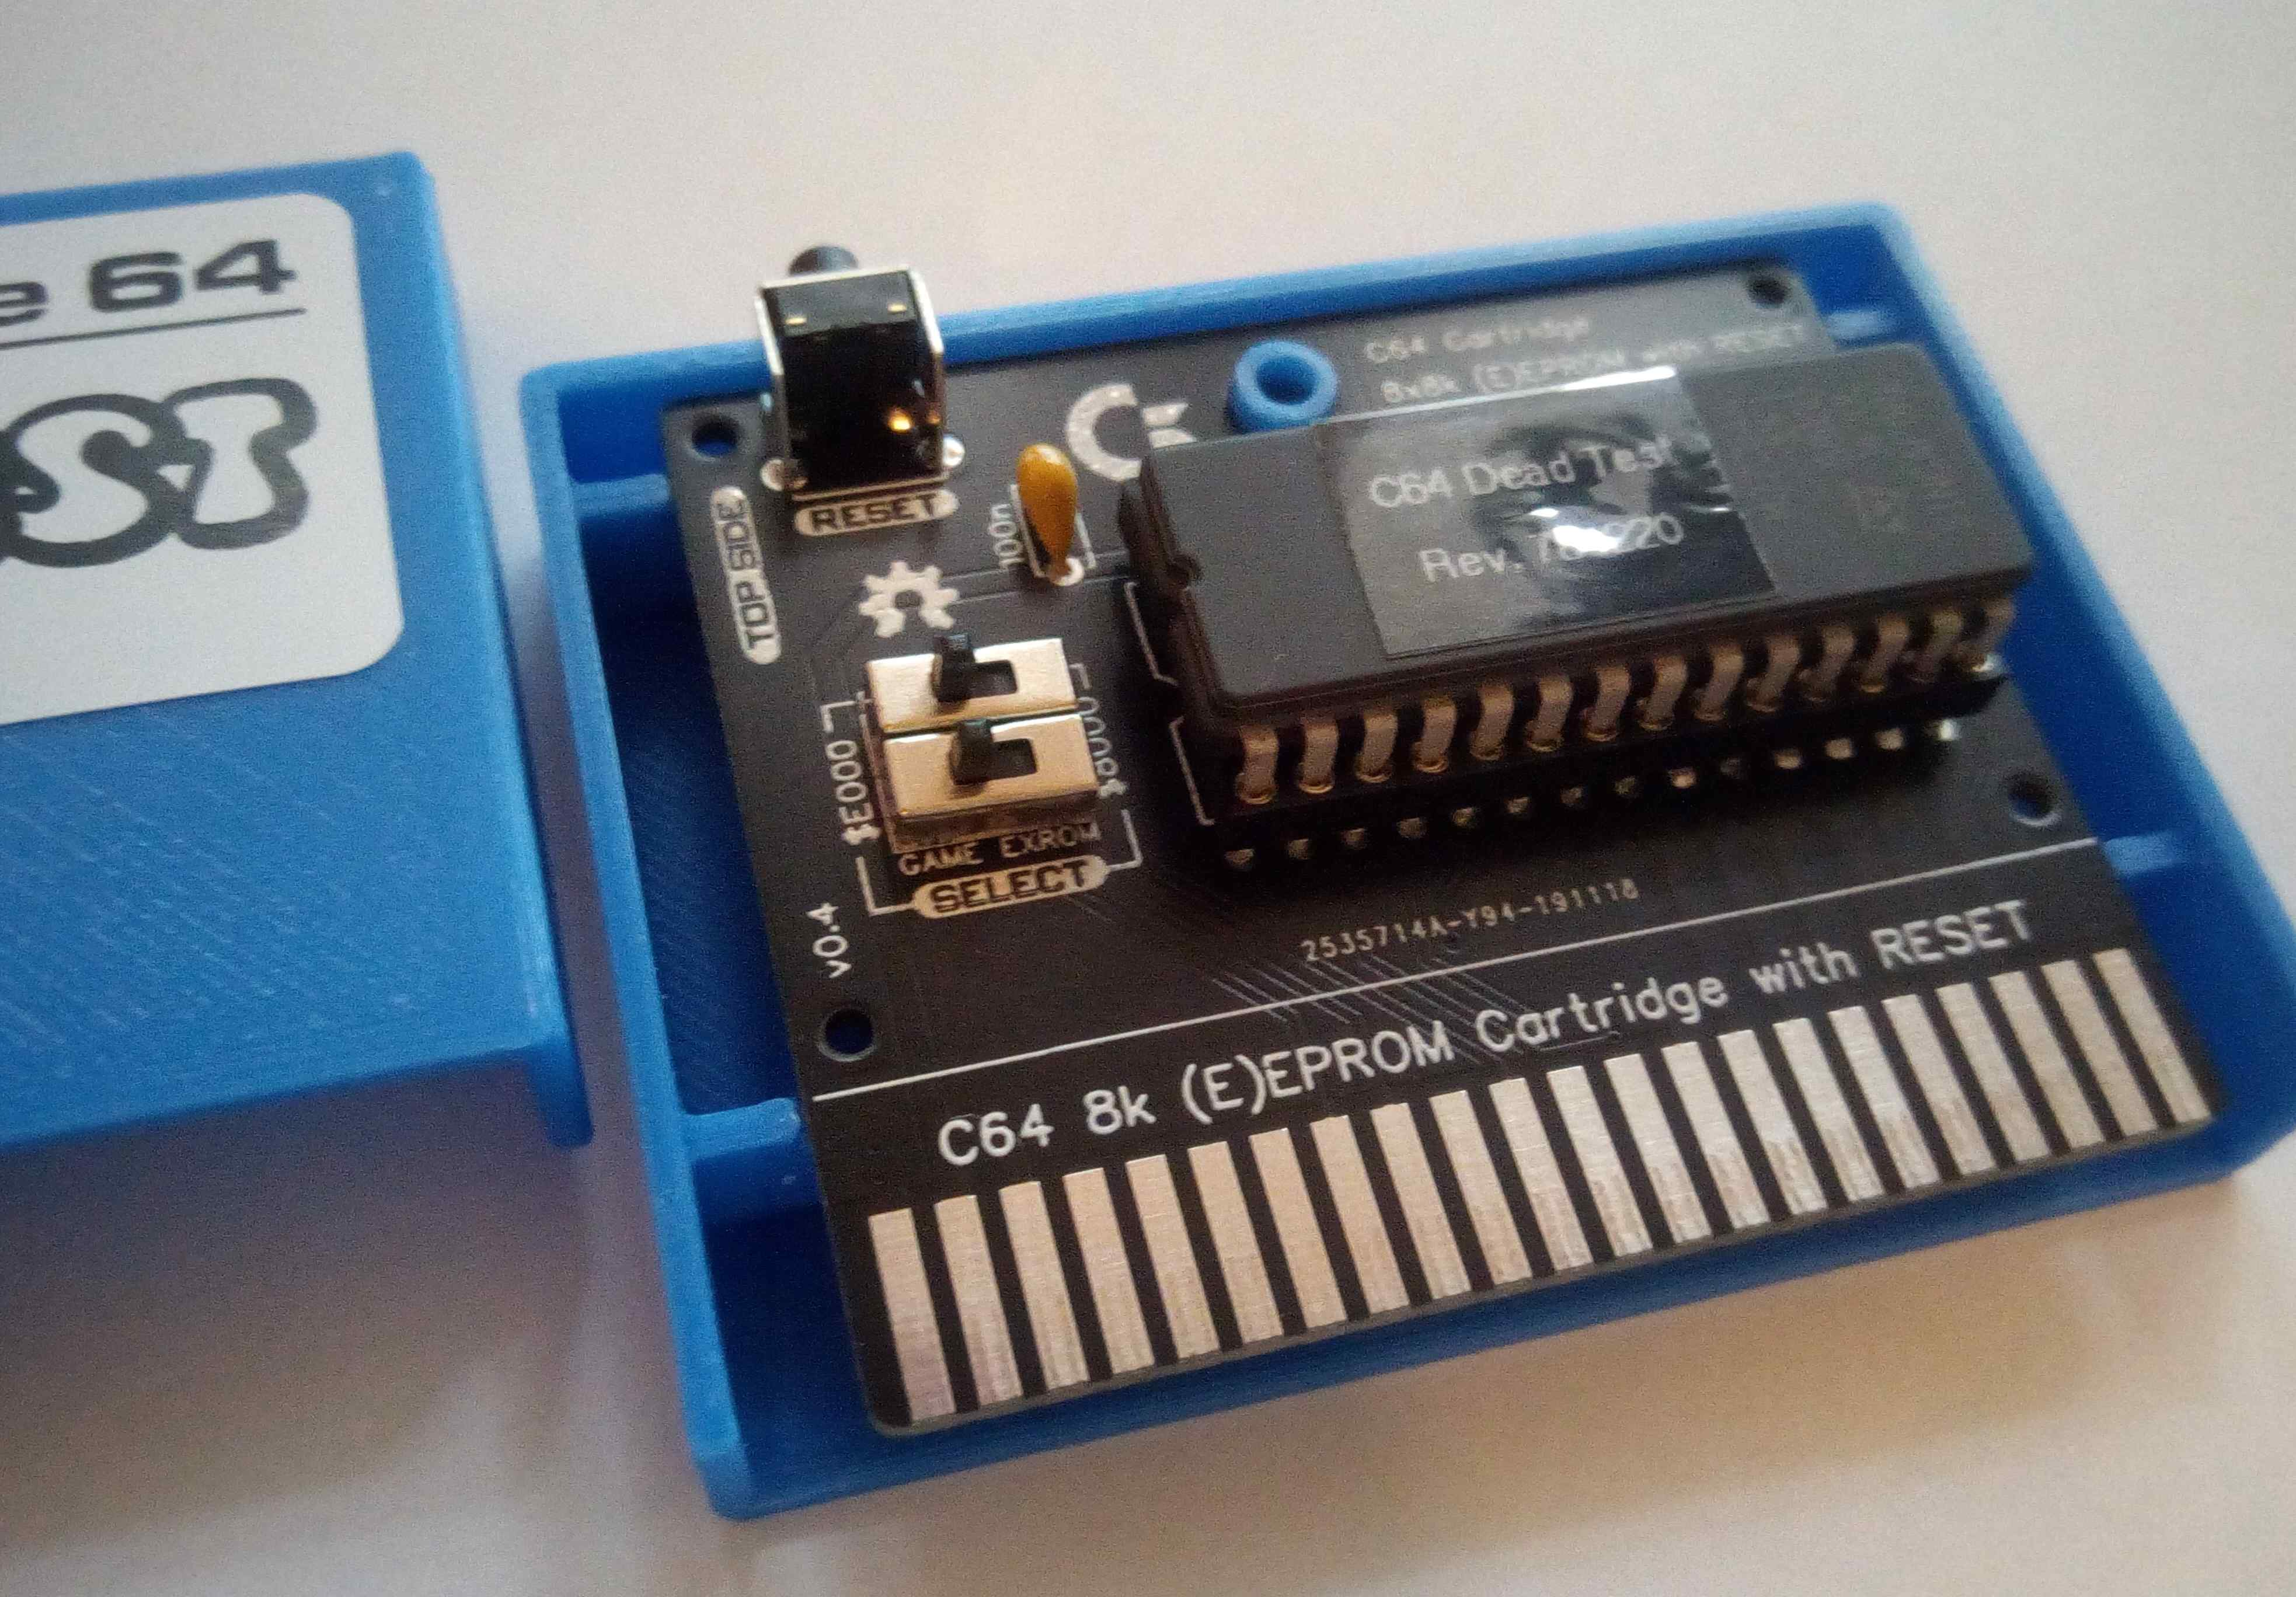 C64 8k Cartridge DIP